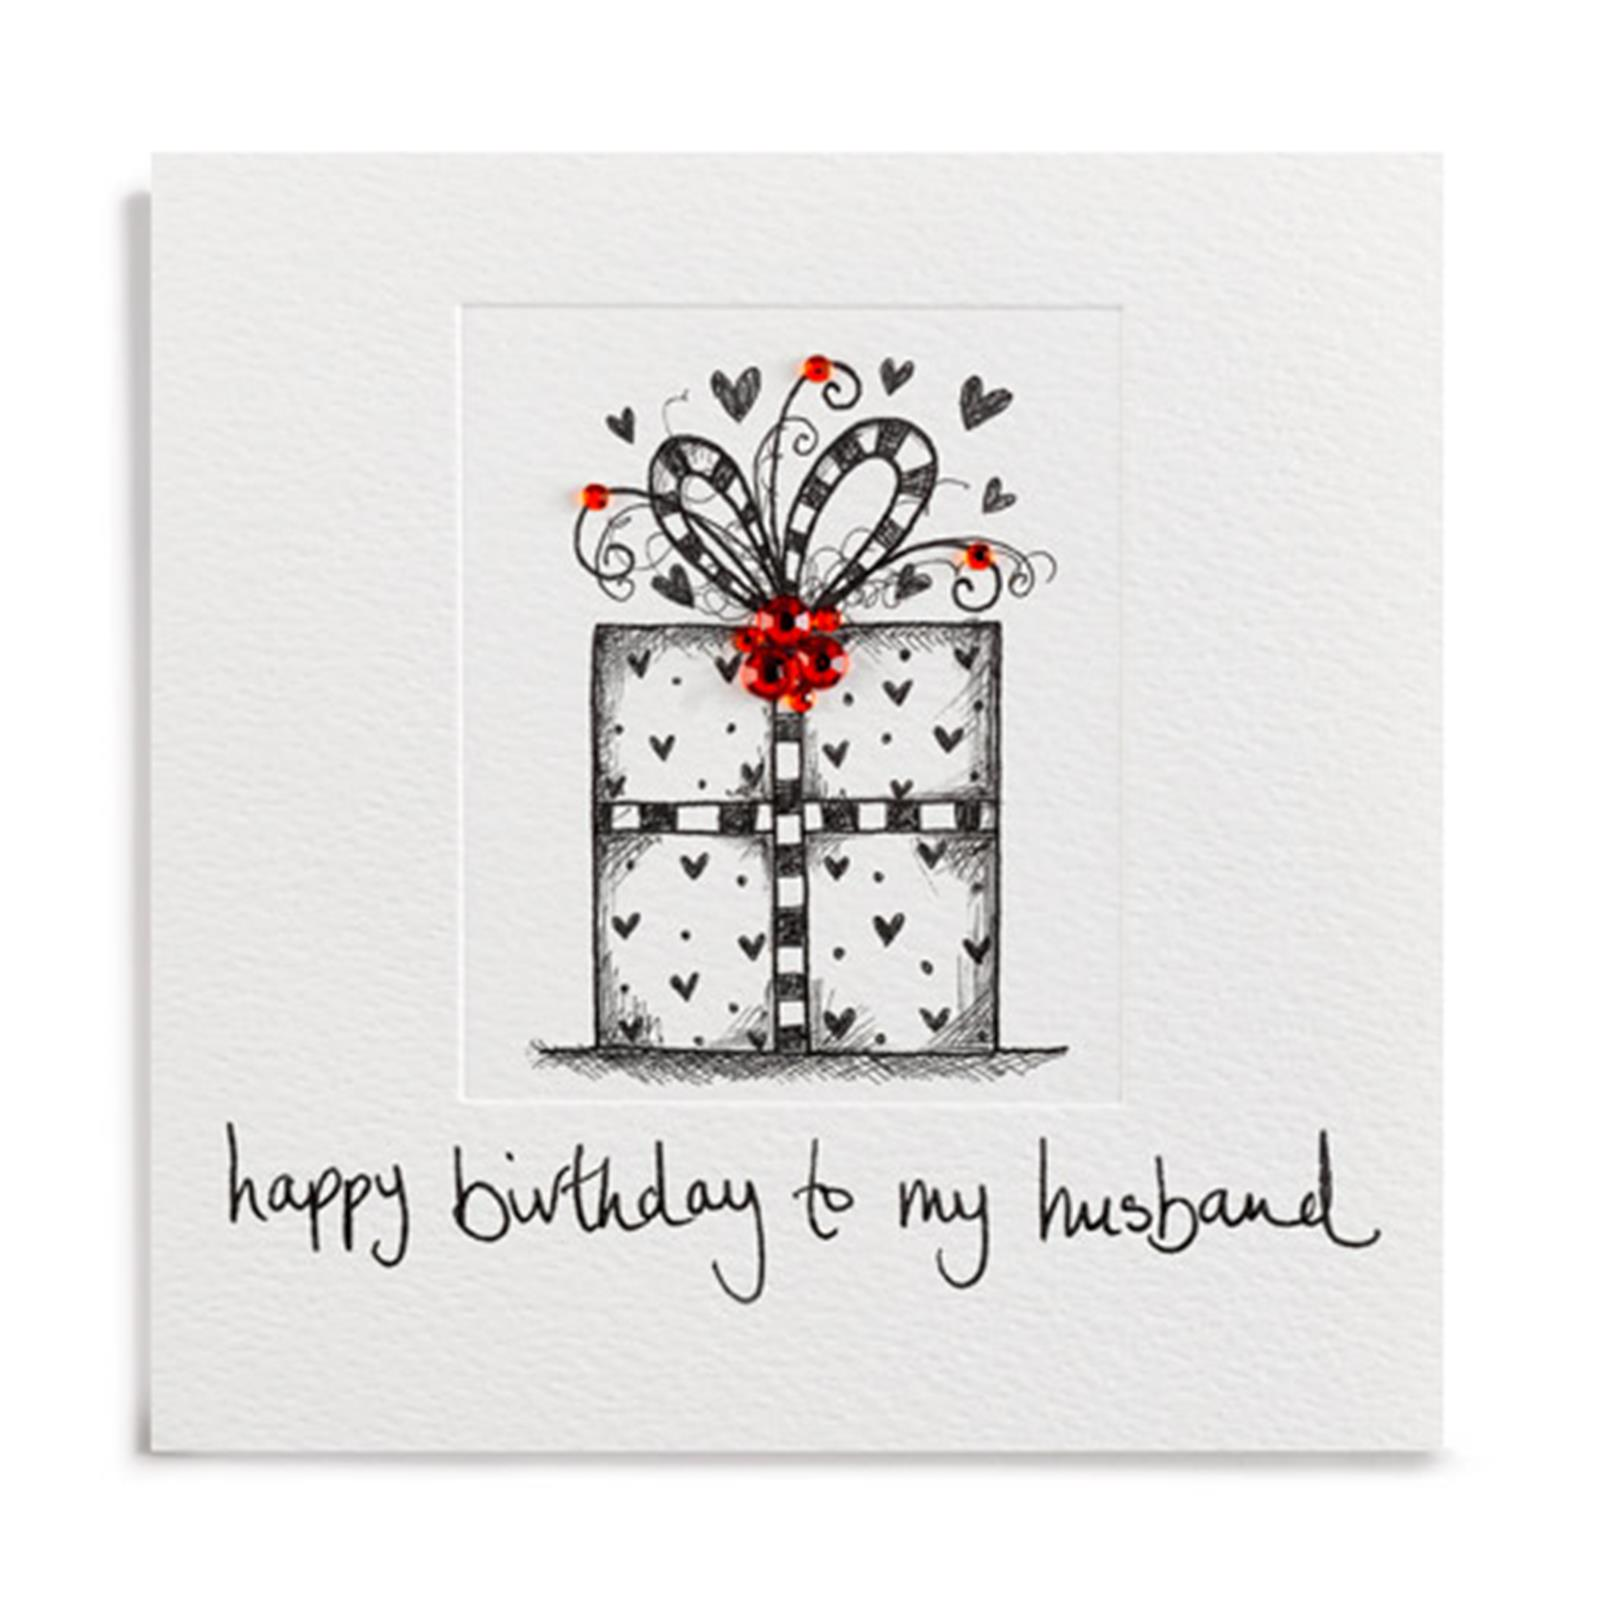 buy husband birthday card online at karenza paperie luxury hand finished birthday present birthday card for husband